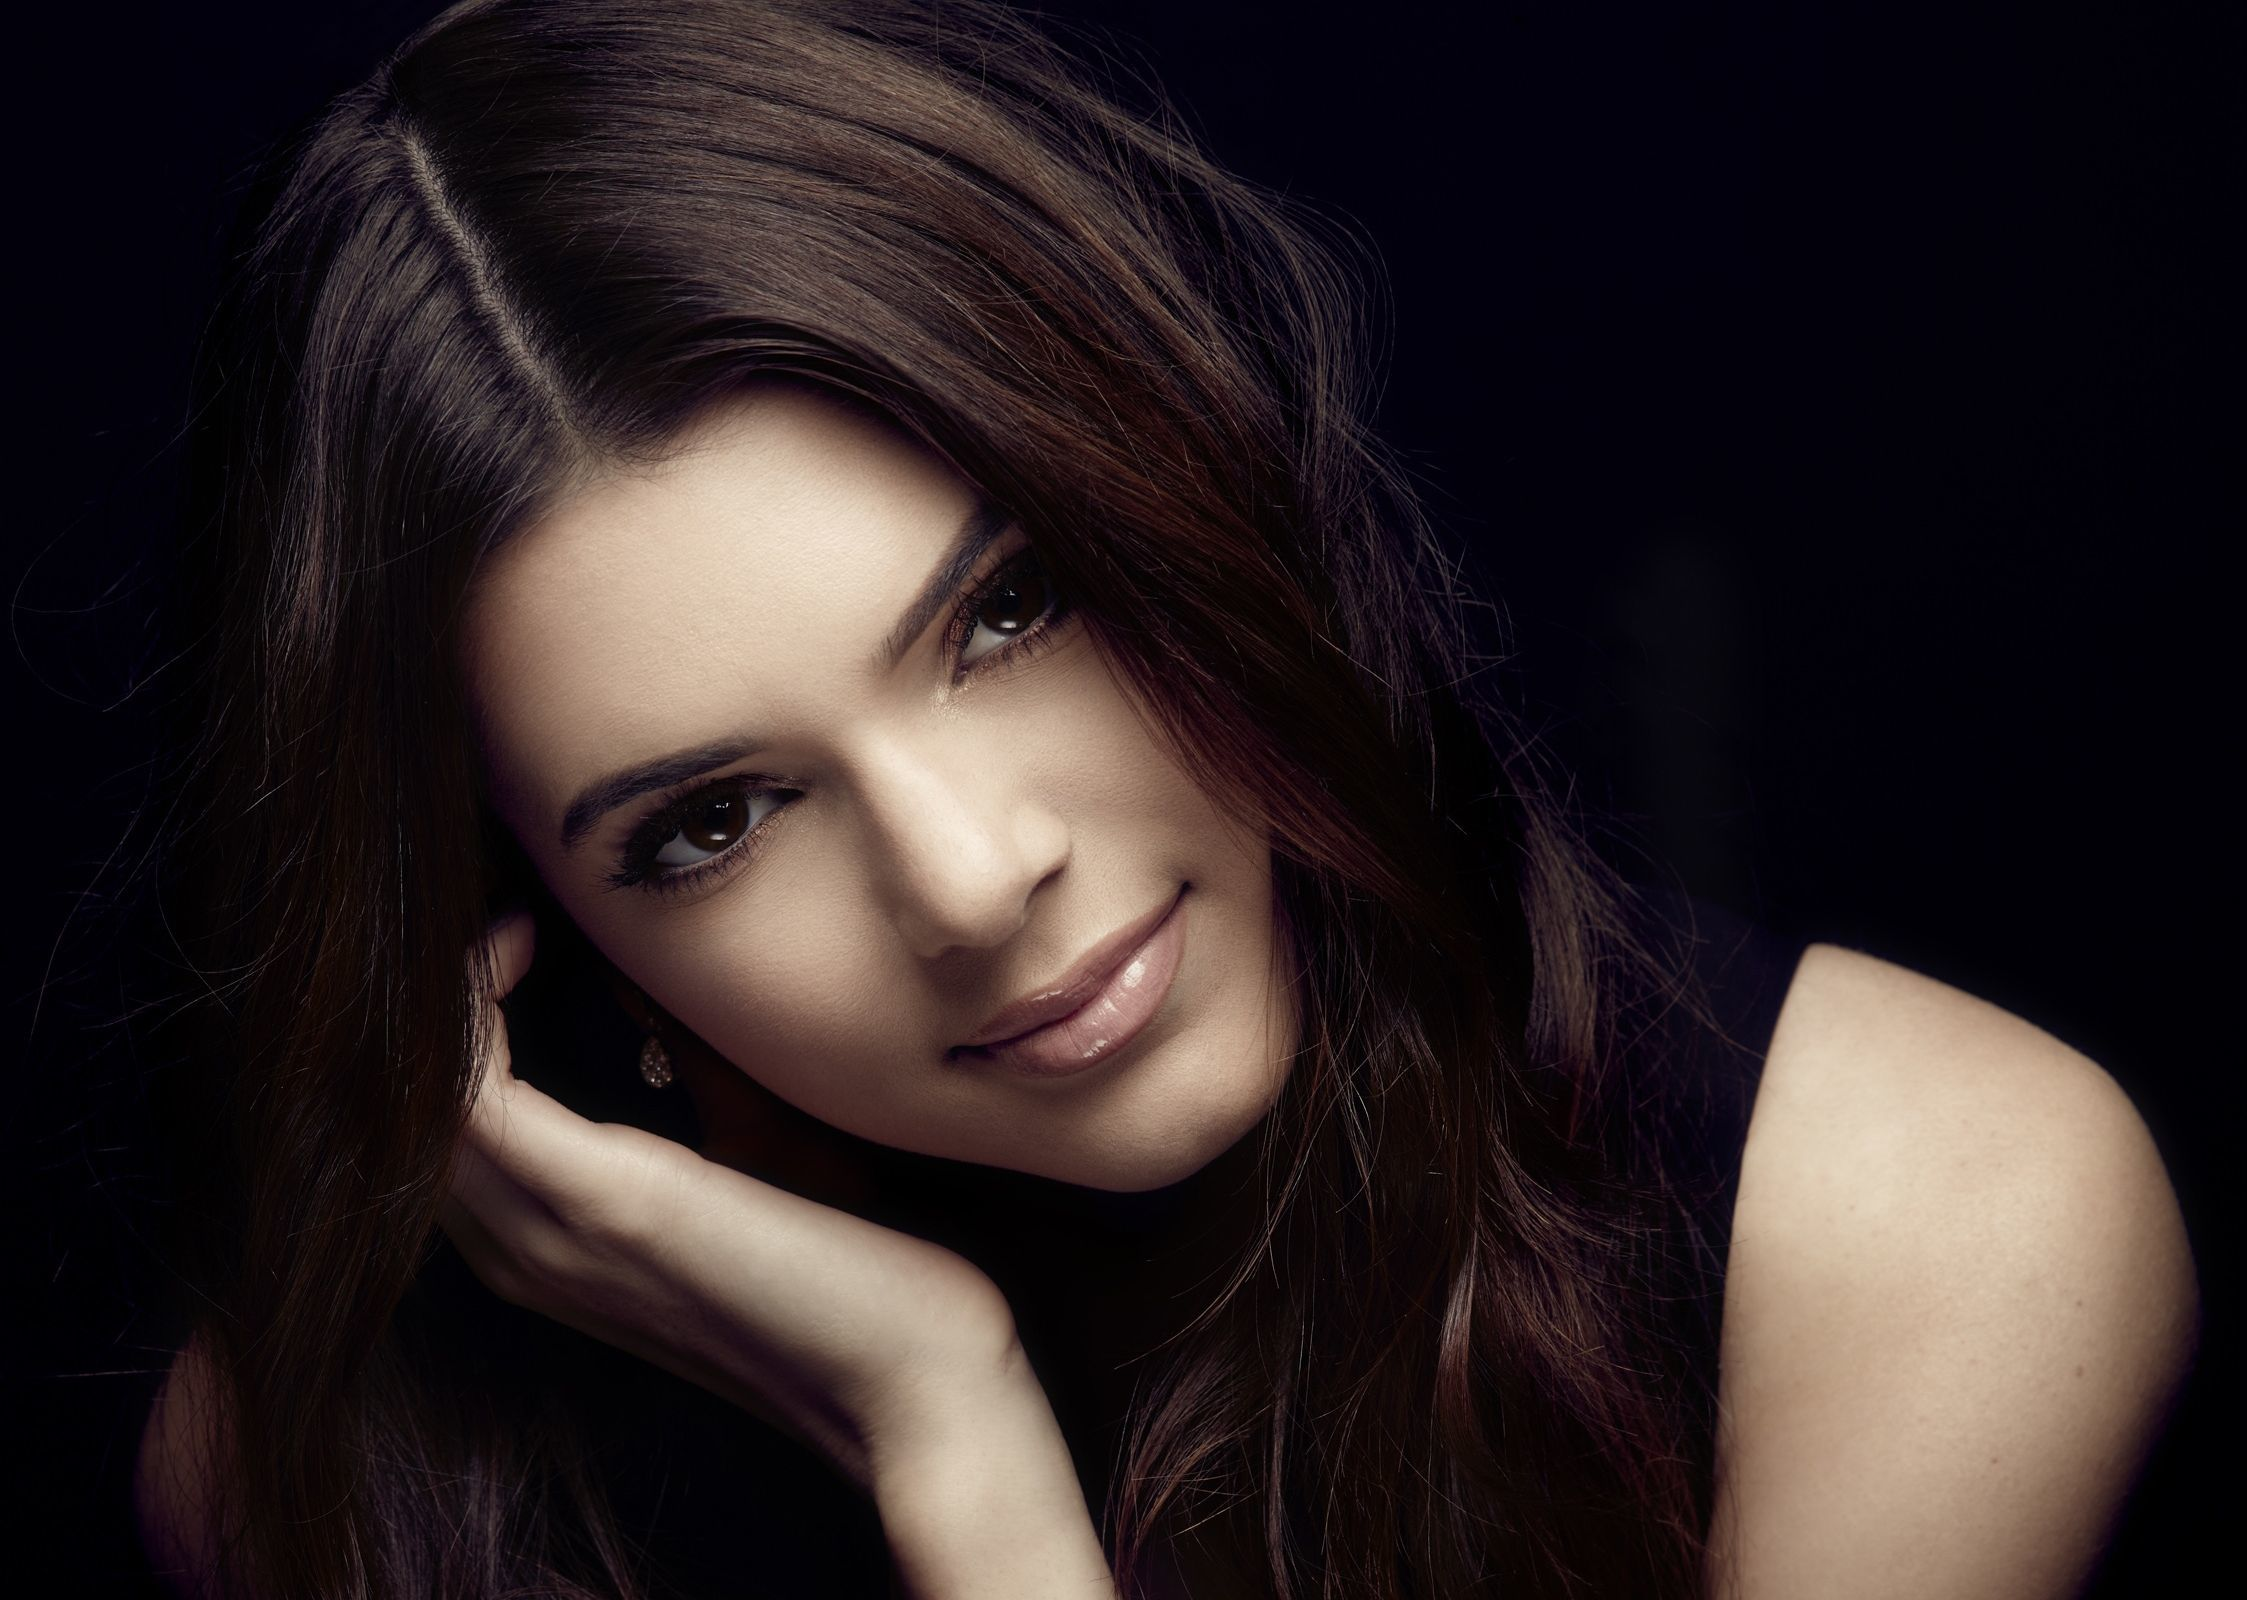 Kendall jenner wallpapers high resolution and quality download - Beautiful model wallpaper ...